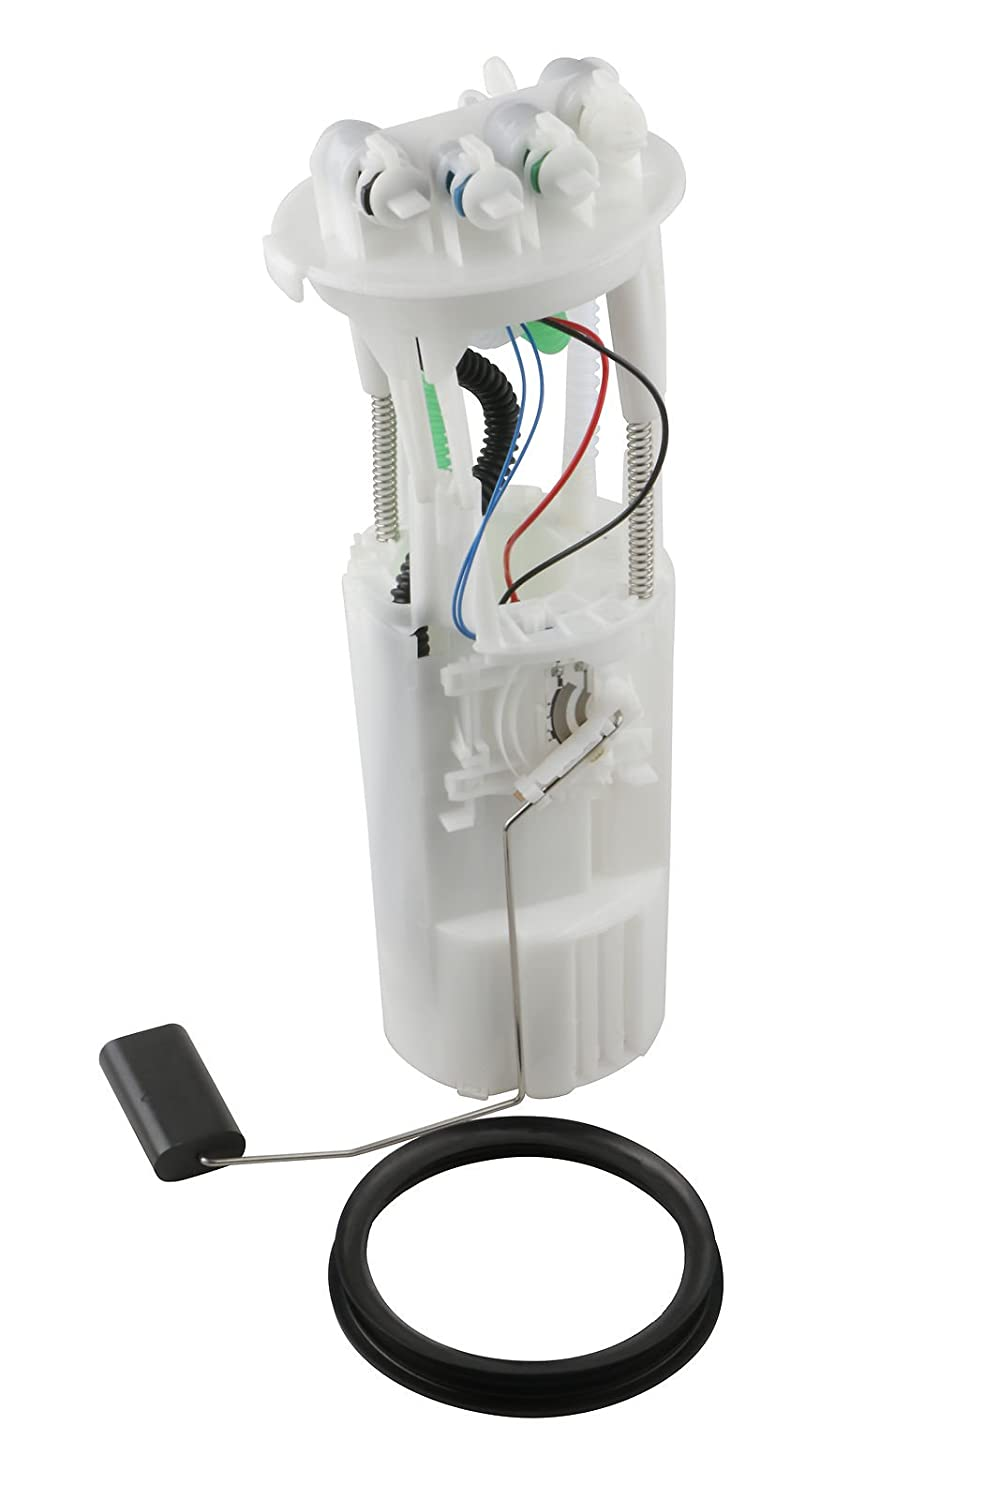 MOSTPLUS In-Tank Fuel Pump LR Discovery 2 TD5 1998-2004 WFX000280 with Sender Unit and Fitting Seal